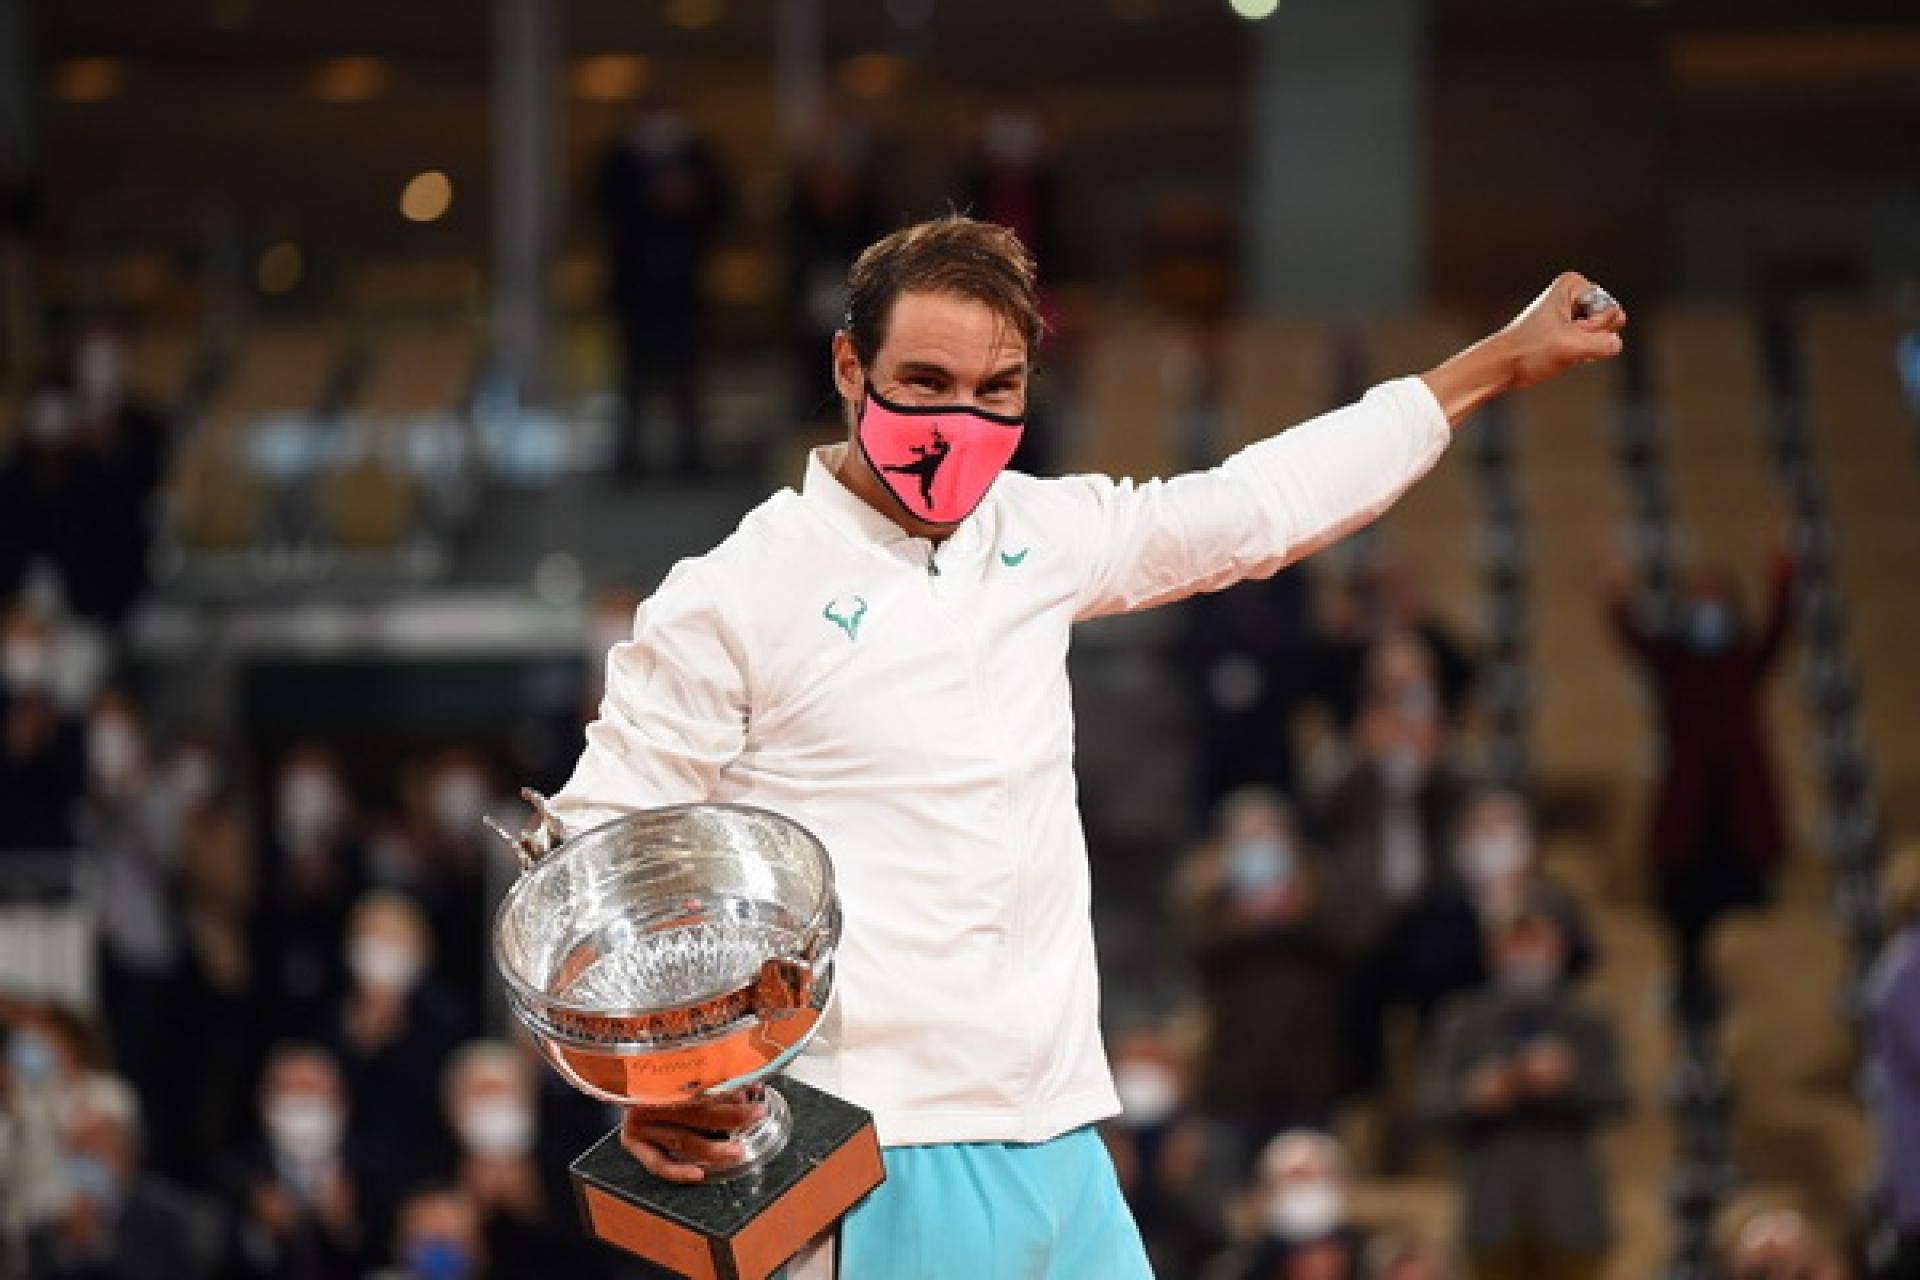 Francisco Roig Rafael Nadal Has Improved Serve In The Past Three Years To